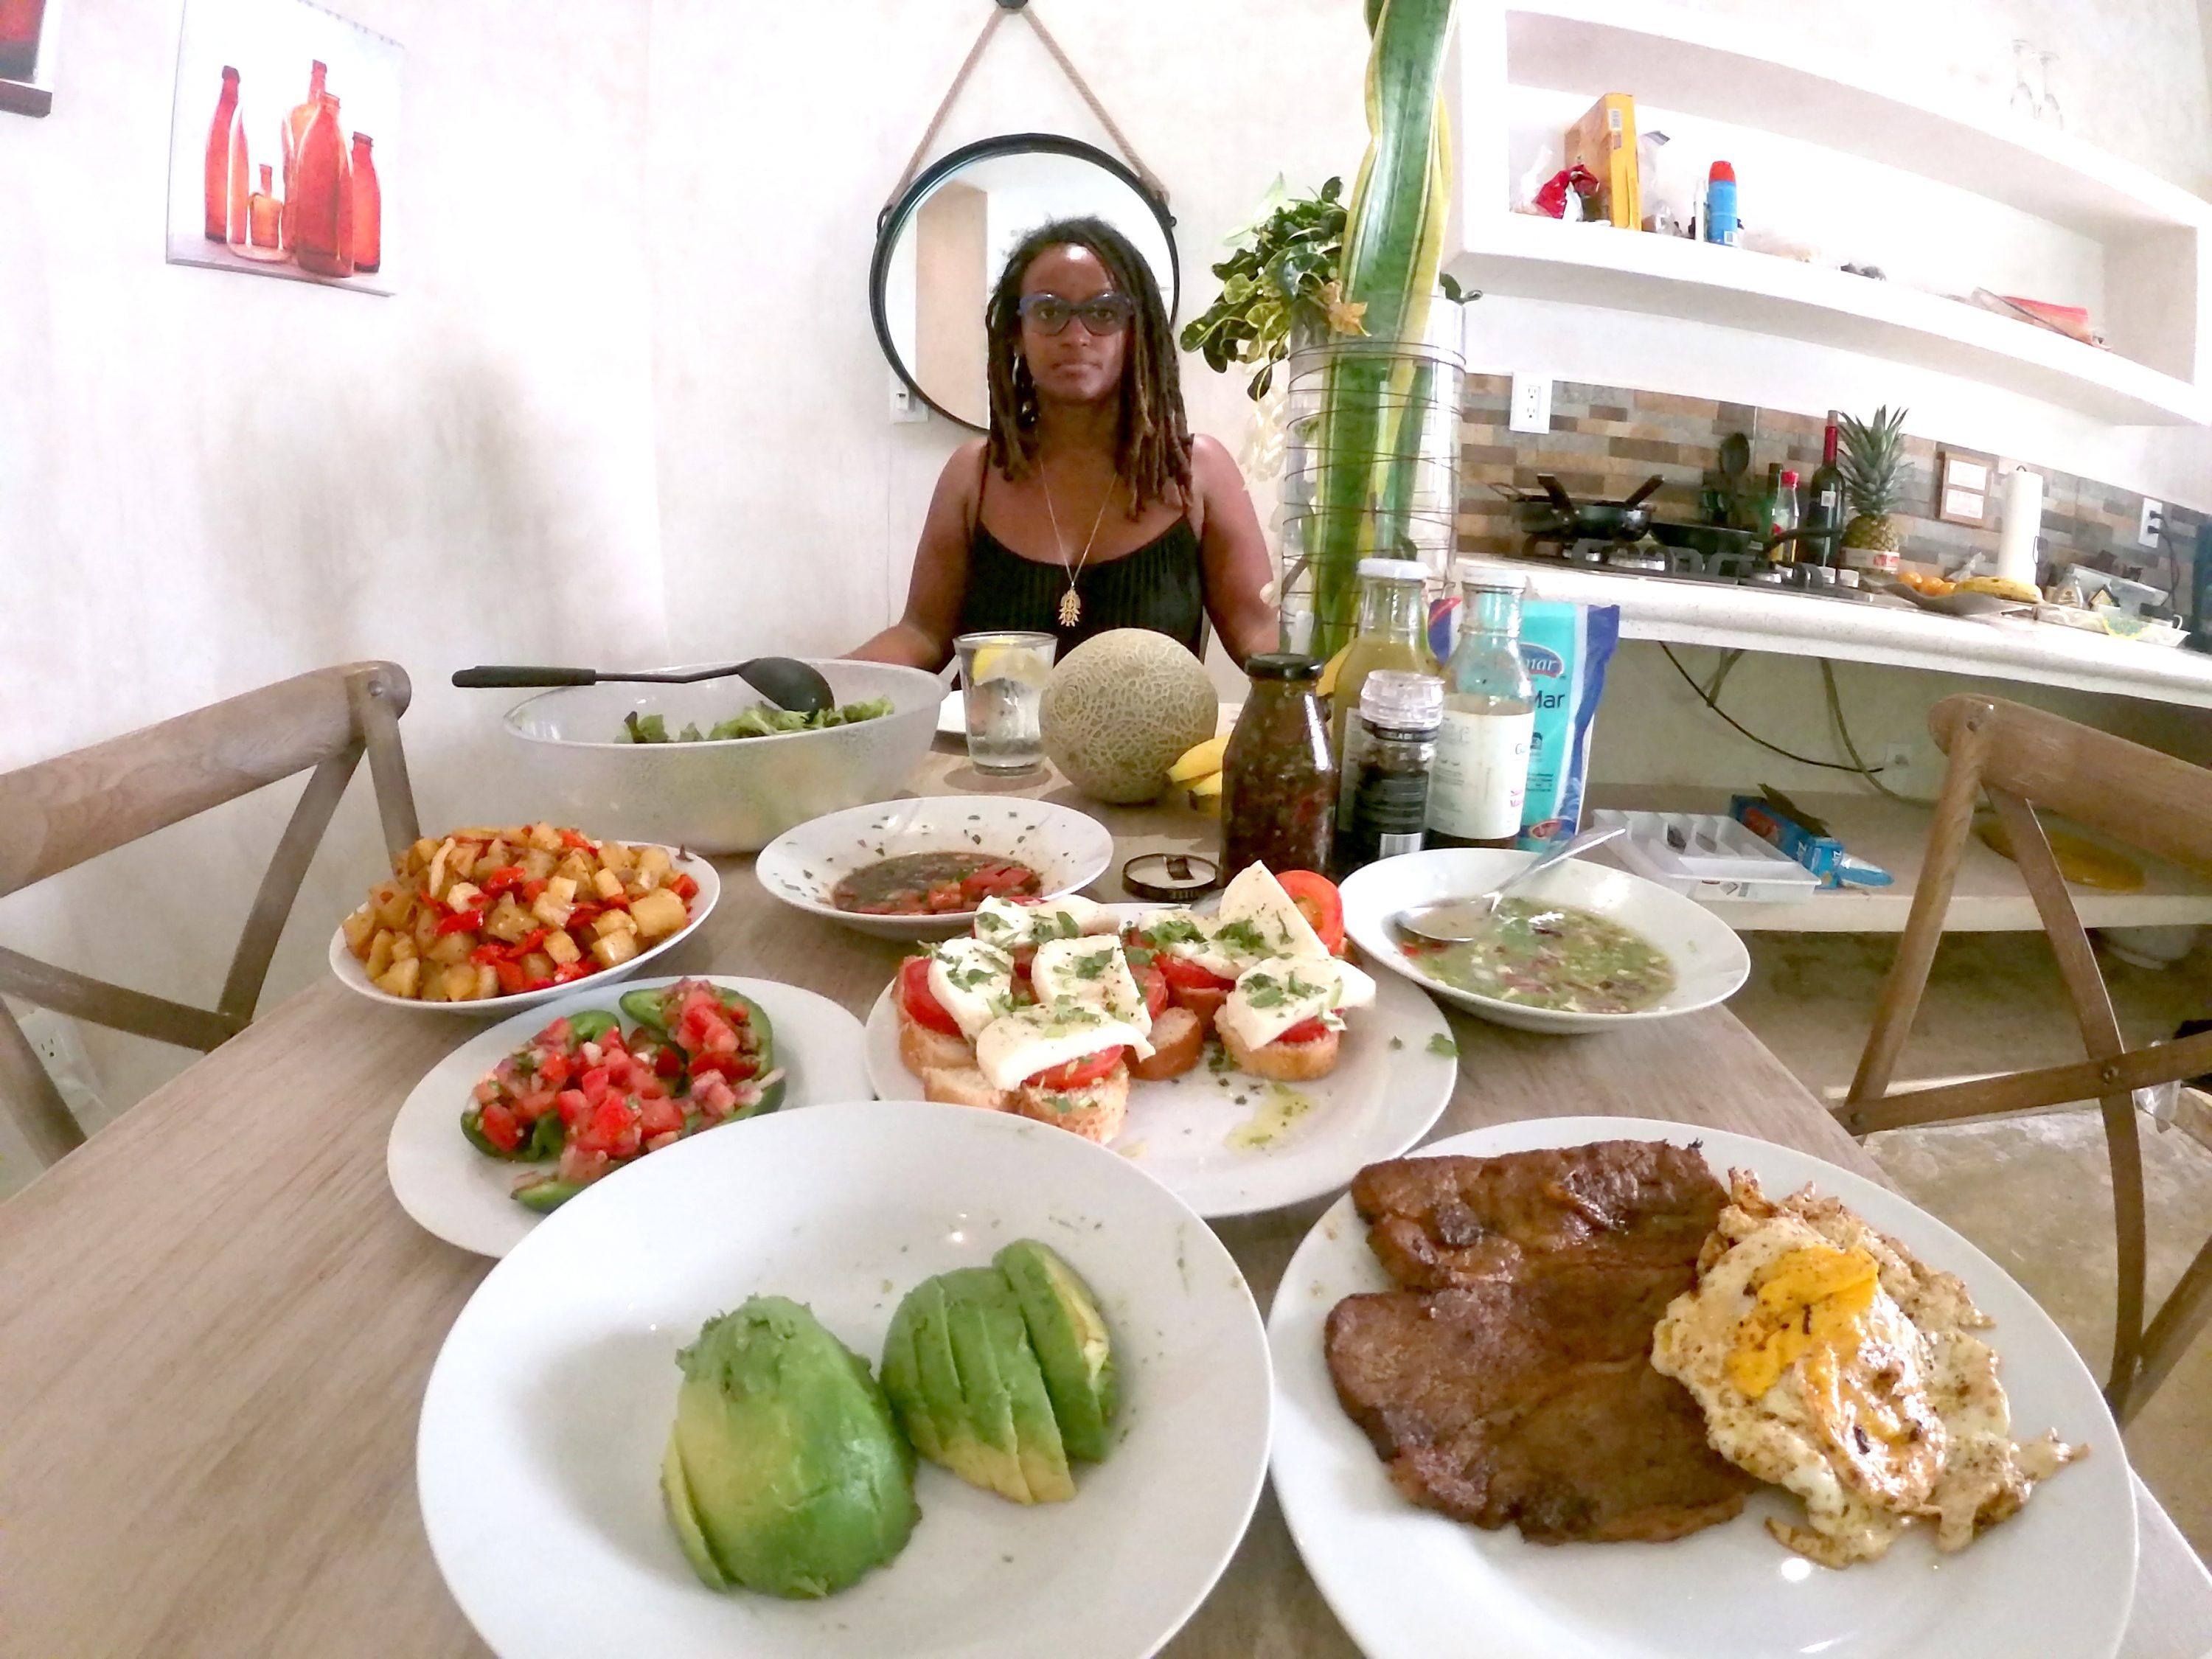 A medium-dark skinned adult woman sits at the end of a table, as if sitting across from the viewer. She has shoulder-length, dreadlocked hair, and wears glasses and a black tank top with a gold necklace. The table is set with colorful foods like avocados and bruschetta.